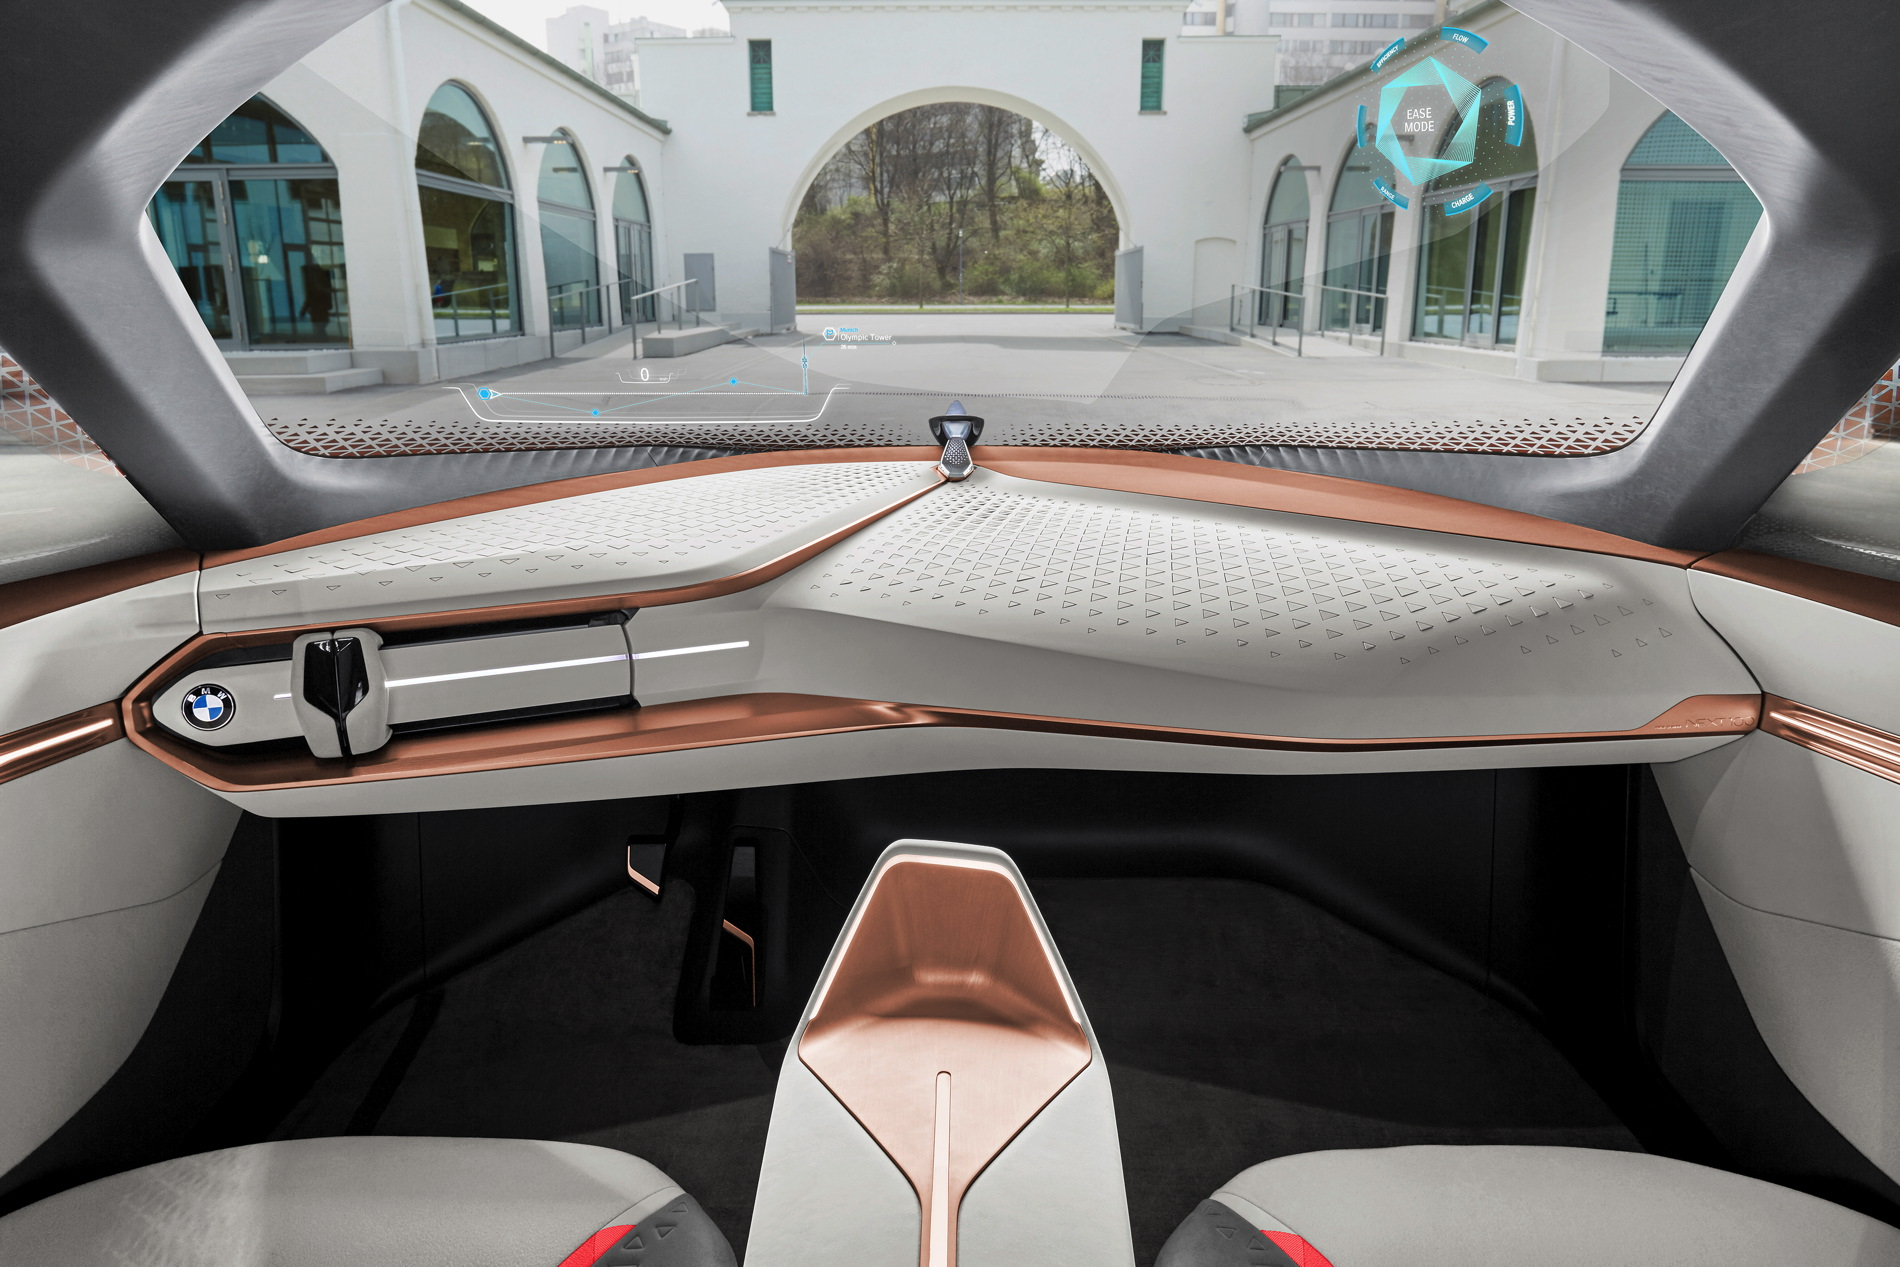 BMW Vision Next 100 images 133